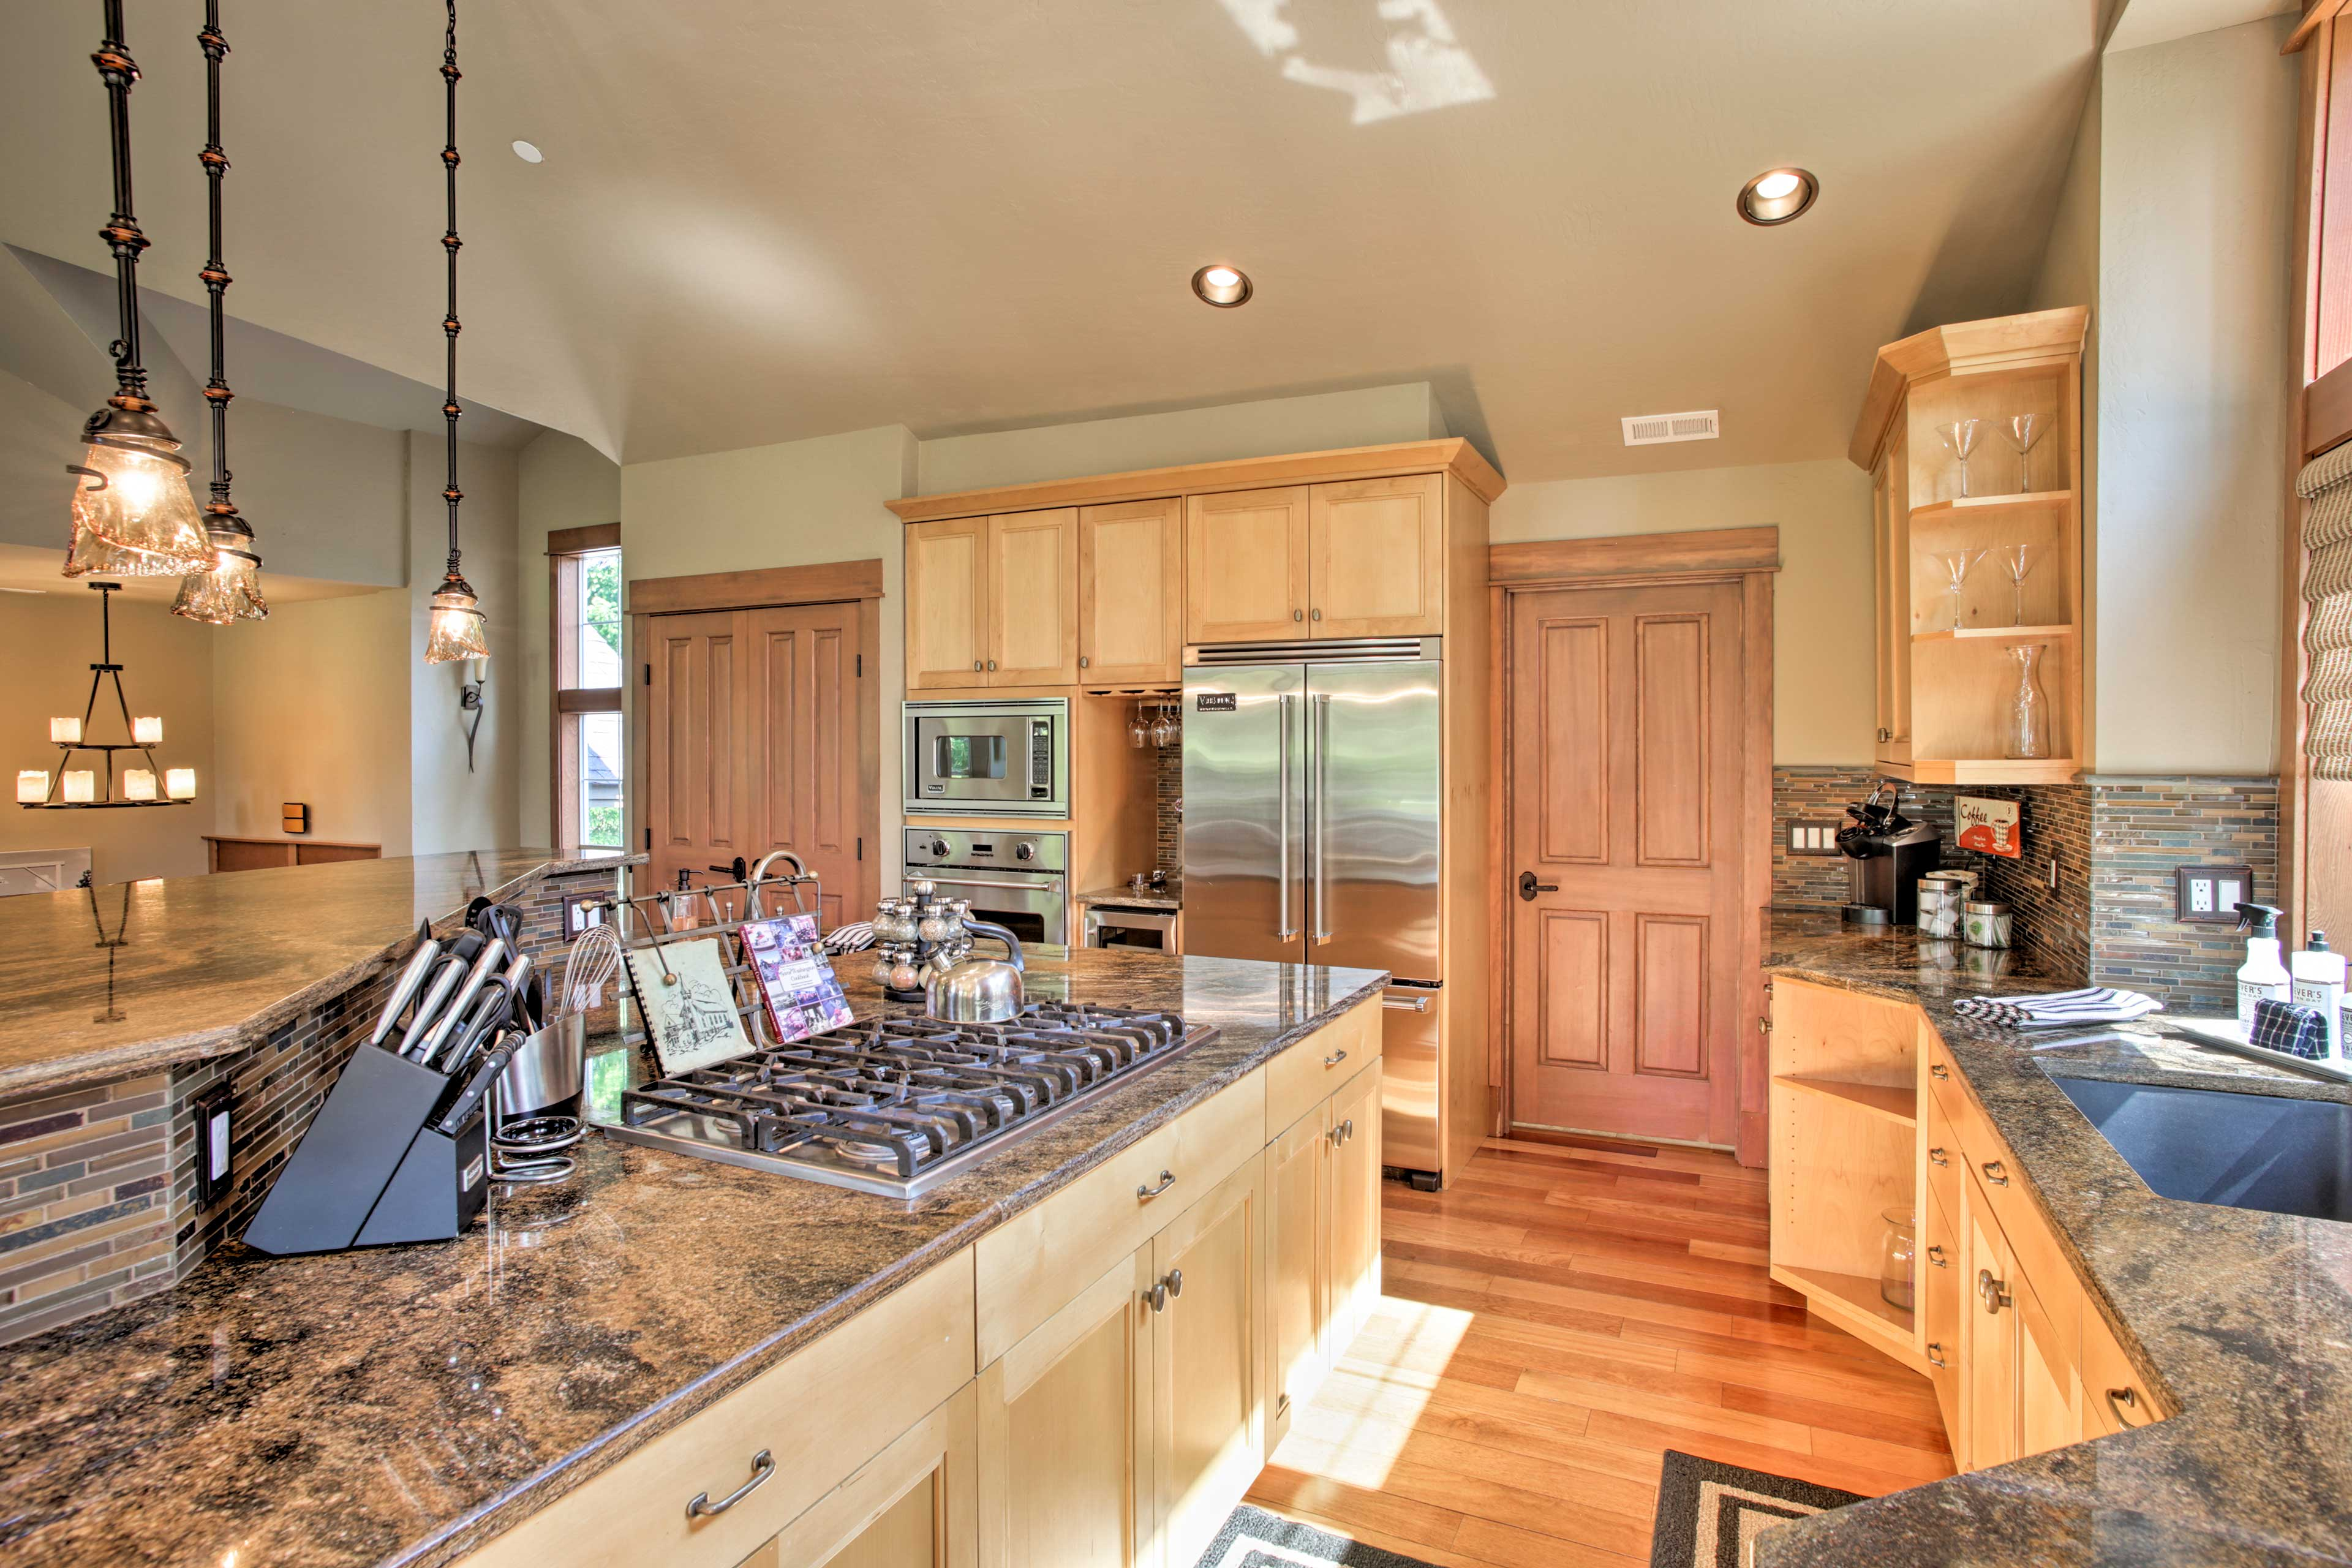 The kitchen comes fully equipped with state-of-the-art appliances.